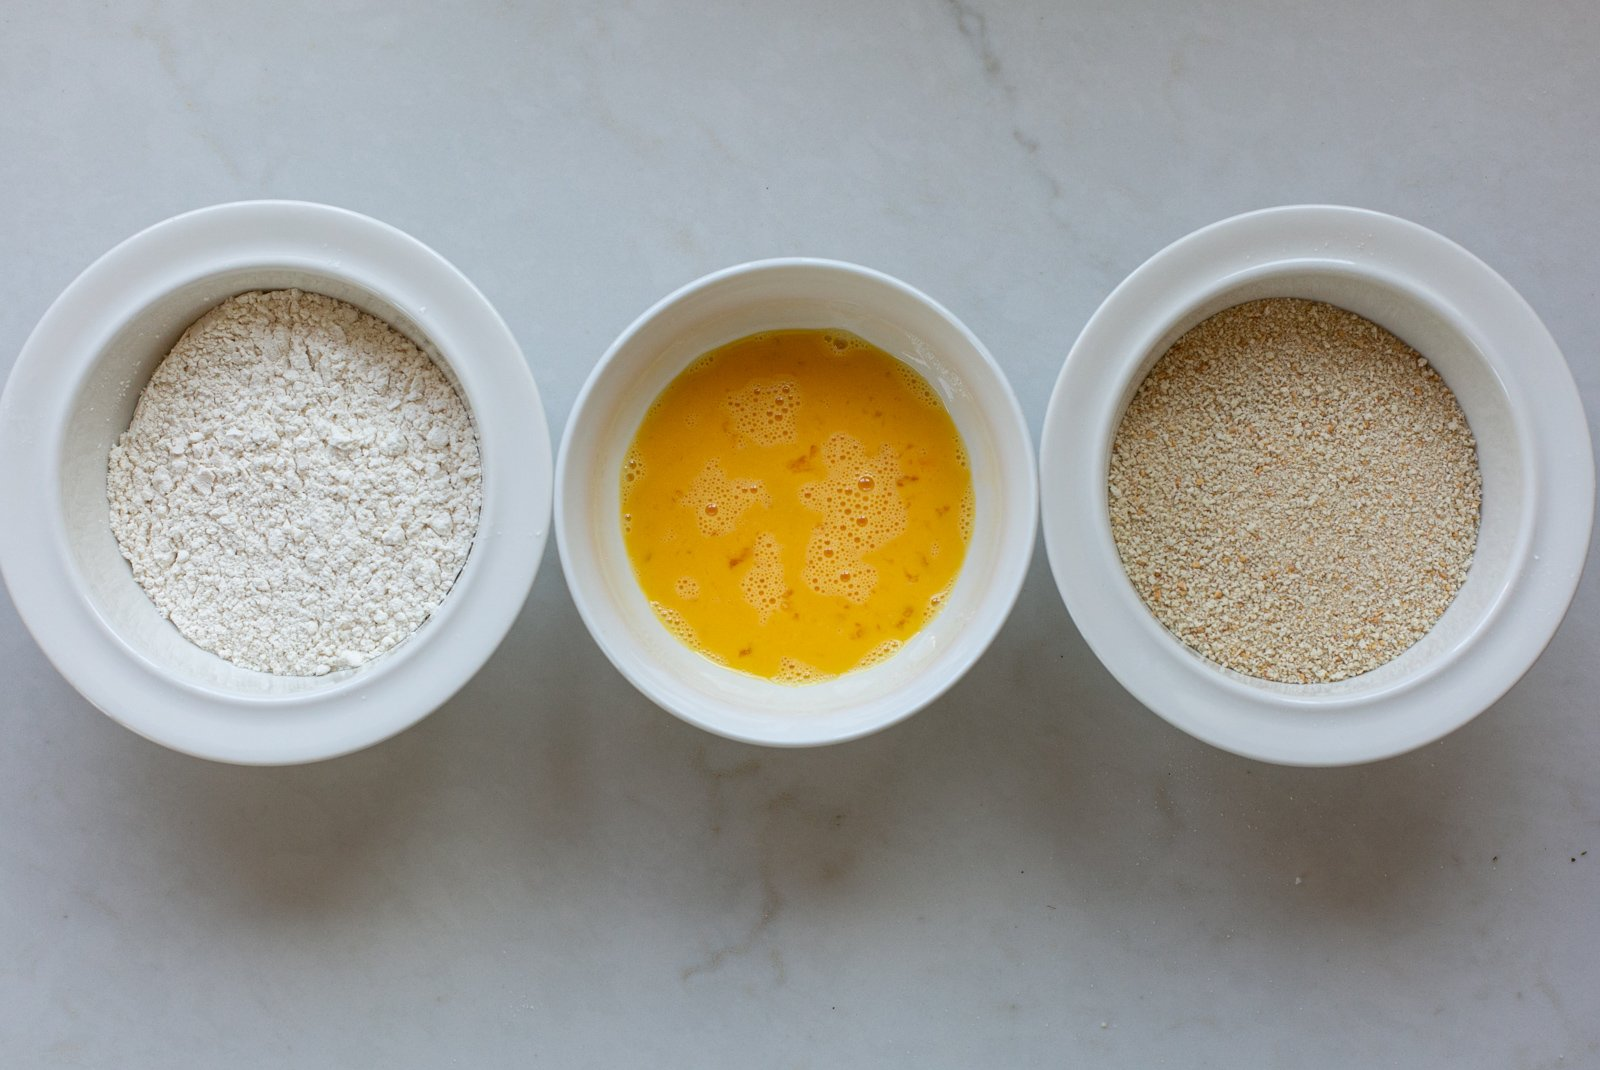 Flour, egg and breadcrumbs in bowls ready to coat chicken fillets